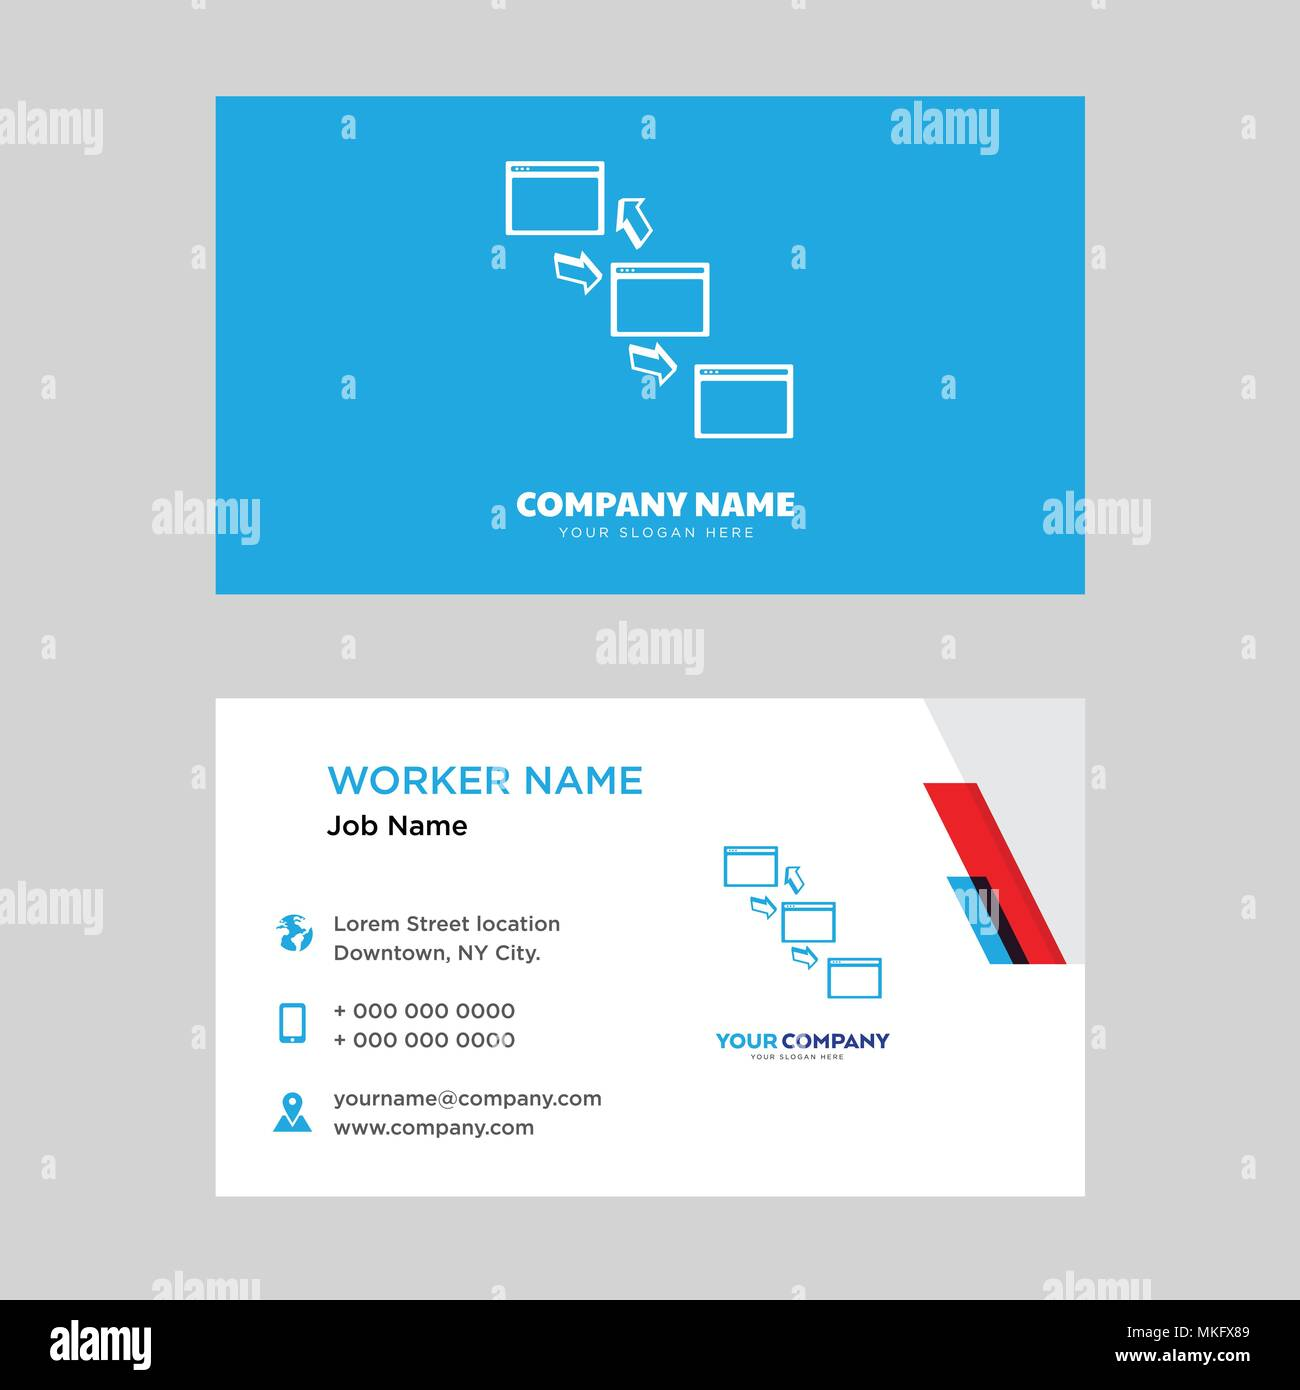 Networking business card design template visiting for your company networking business card design template visiting for your company modern horizontal identity card vector accmission Image collections